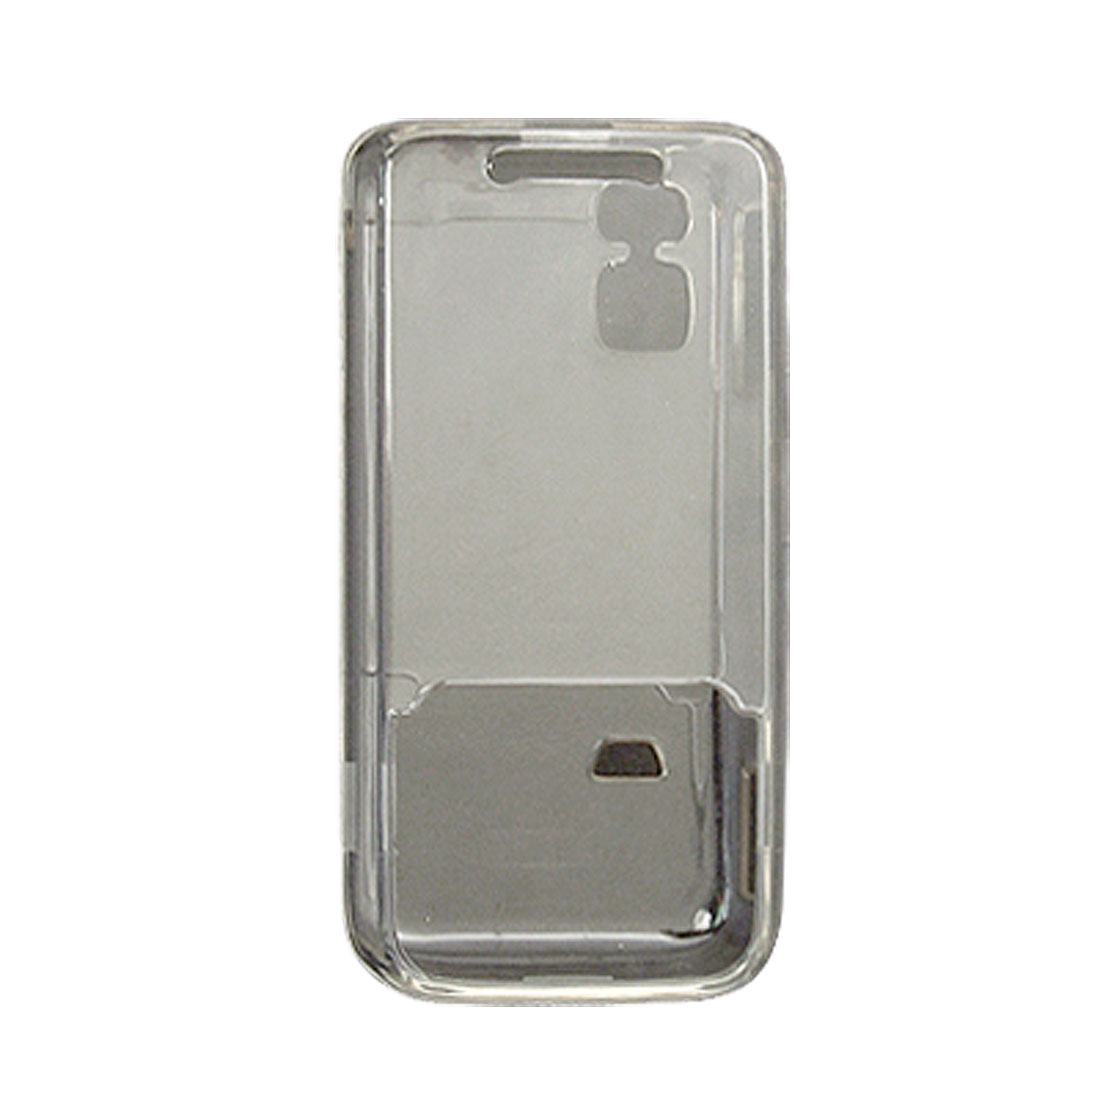 Crystal Plastic Case Hard Cover Shell for Nokia 5610